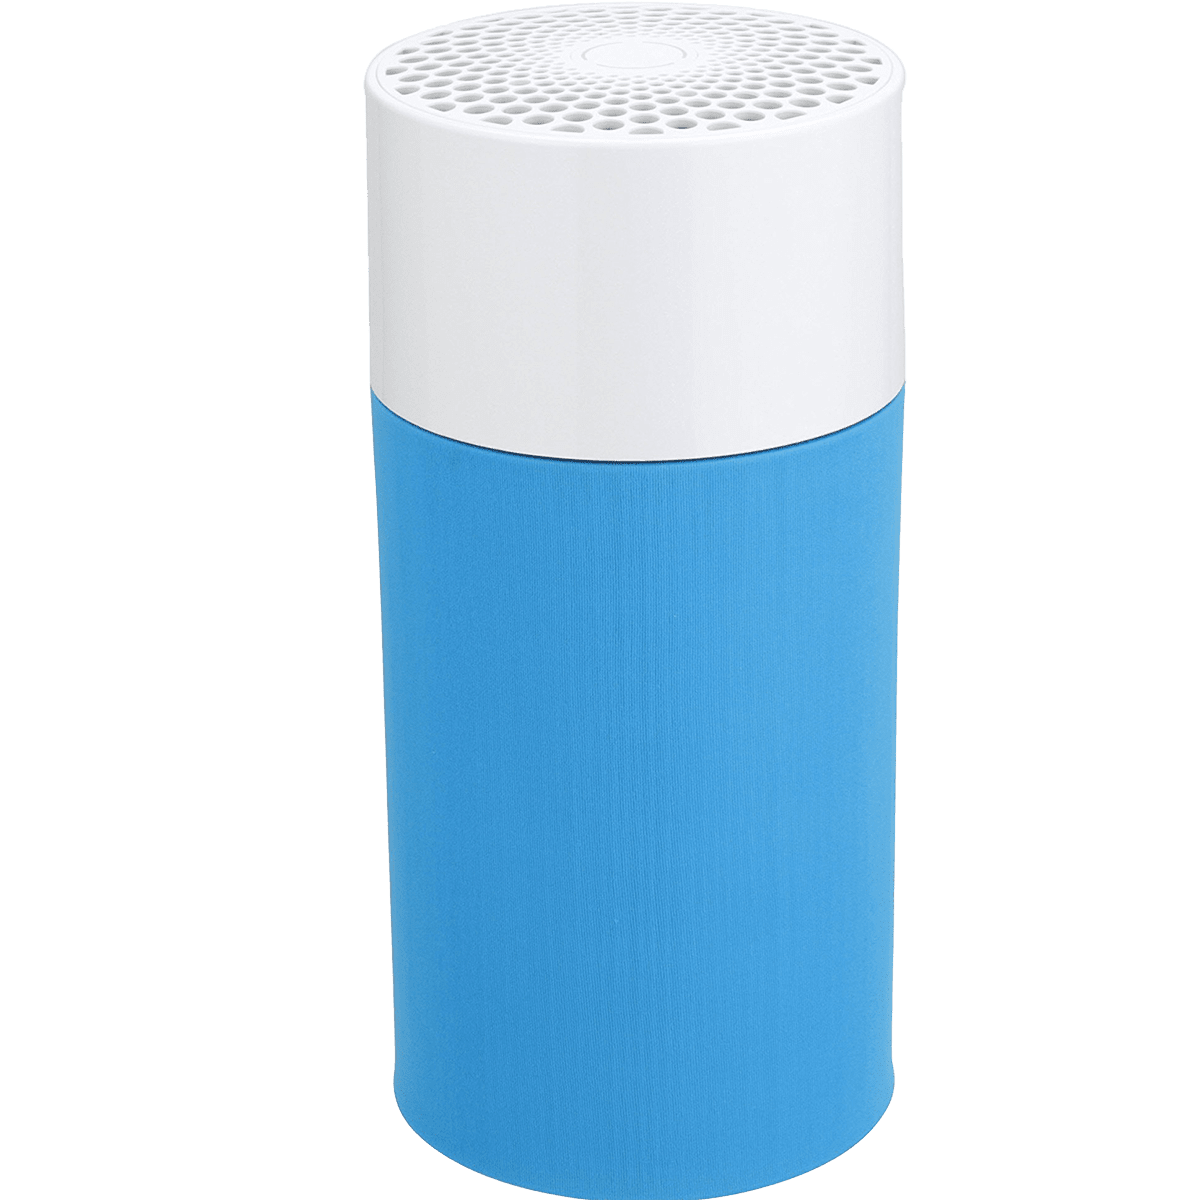 Blueair 411 Air Purifier bl7160